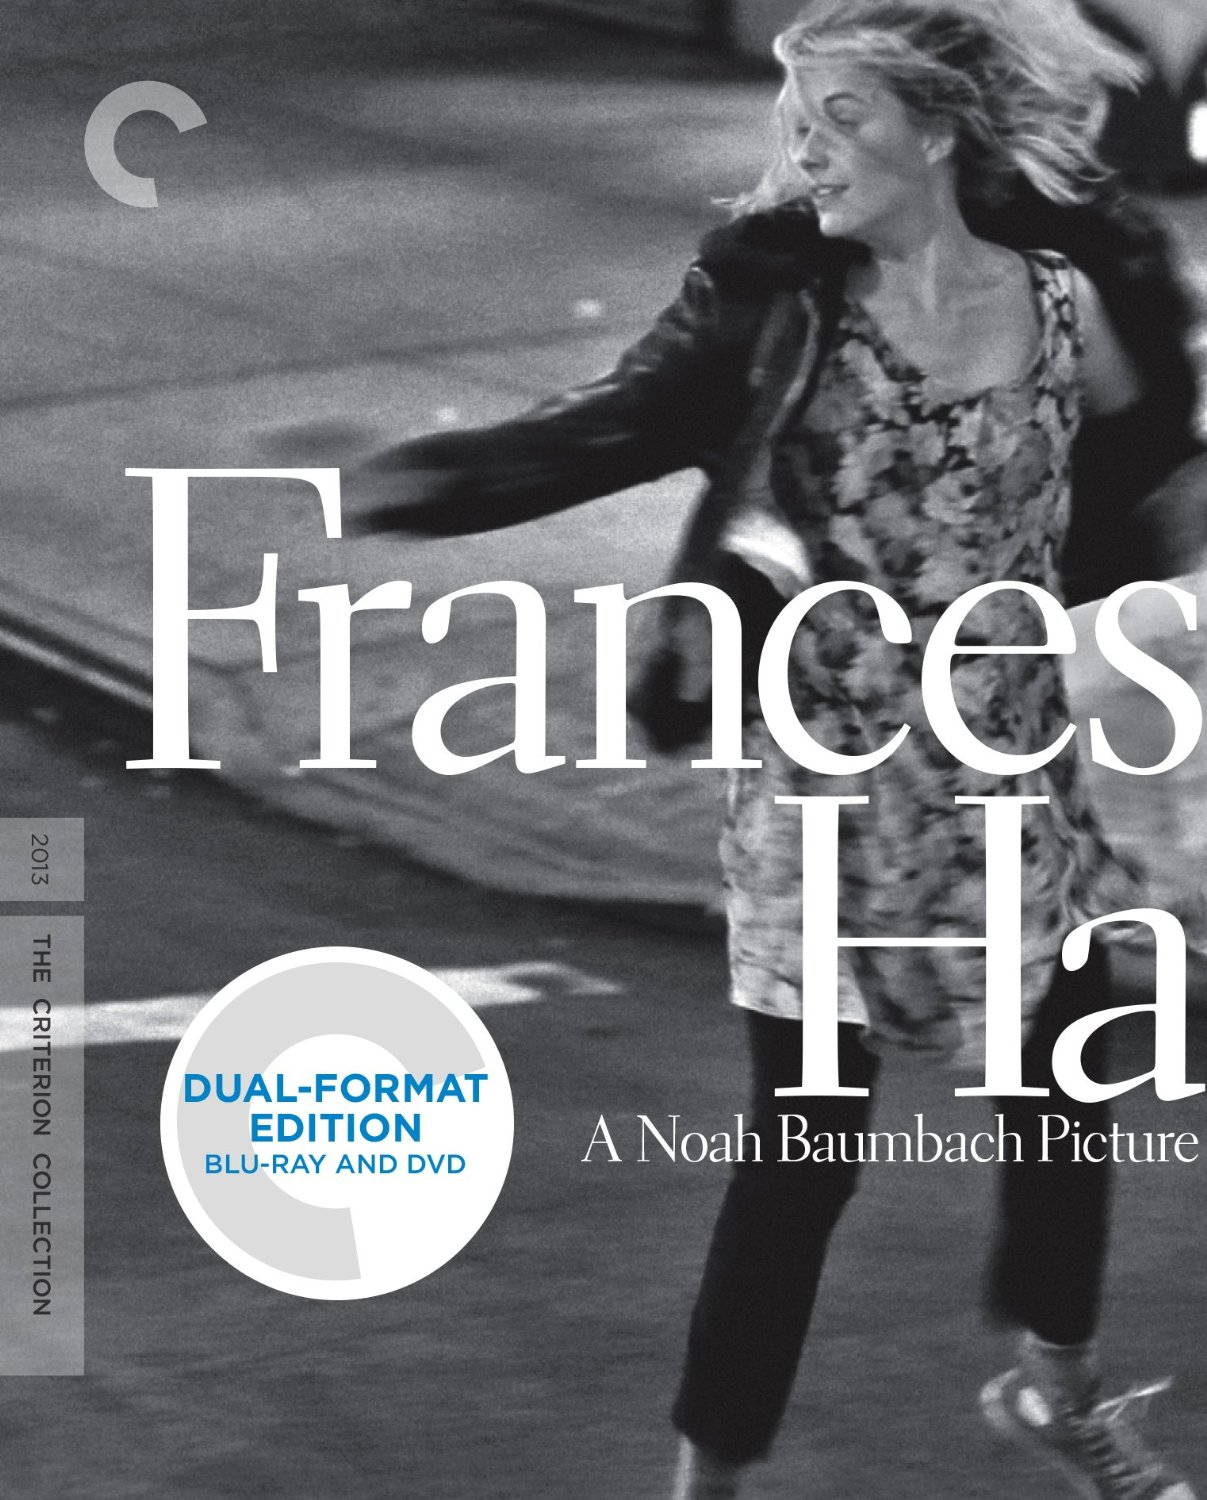 (Reposting via  Sean Fennessy —for some reason standard reblog functionality for photo reblogs are not working for me right now. Grrrrrr.)    I haven't seen  Frances Ha  yet, though I will almost certainly pick this up when it's released in November. Side note: Noah Baumbach's interview with Marc Maron via the  WTF Podcast  is excellent (the quote I posted earlier today is from that interview)—he talks about his new movie, while also touching on the ups and downs of his career.     My first job right out of college was doing graphic design with a small DVD label in Ravenswood called HVE, who was also Criterion's distributor. During that 3-year period, I really grew to love this company's output, and received something of a crash course in film history, to boot. A big perk of working there was that I received a copy of each Criterion release—everything between the releases of  Band Of Outsiders  and  F For Fake , which turned out to be something like 115 complimentary Criterion DVDs. It was pretty sweet.